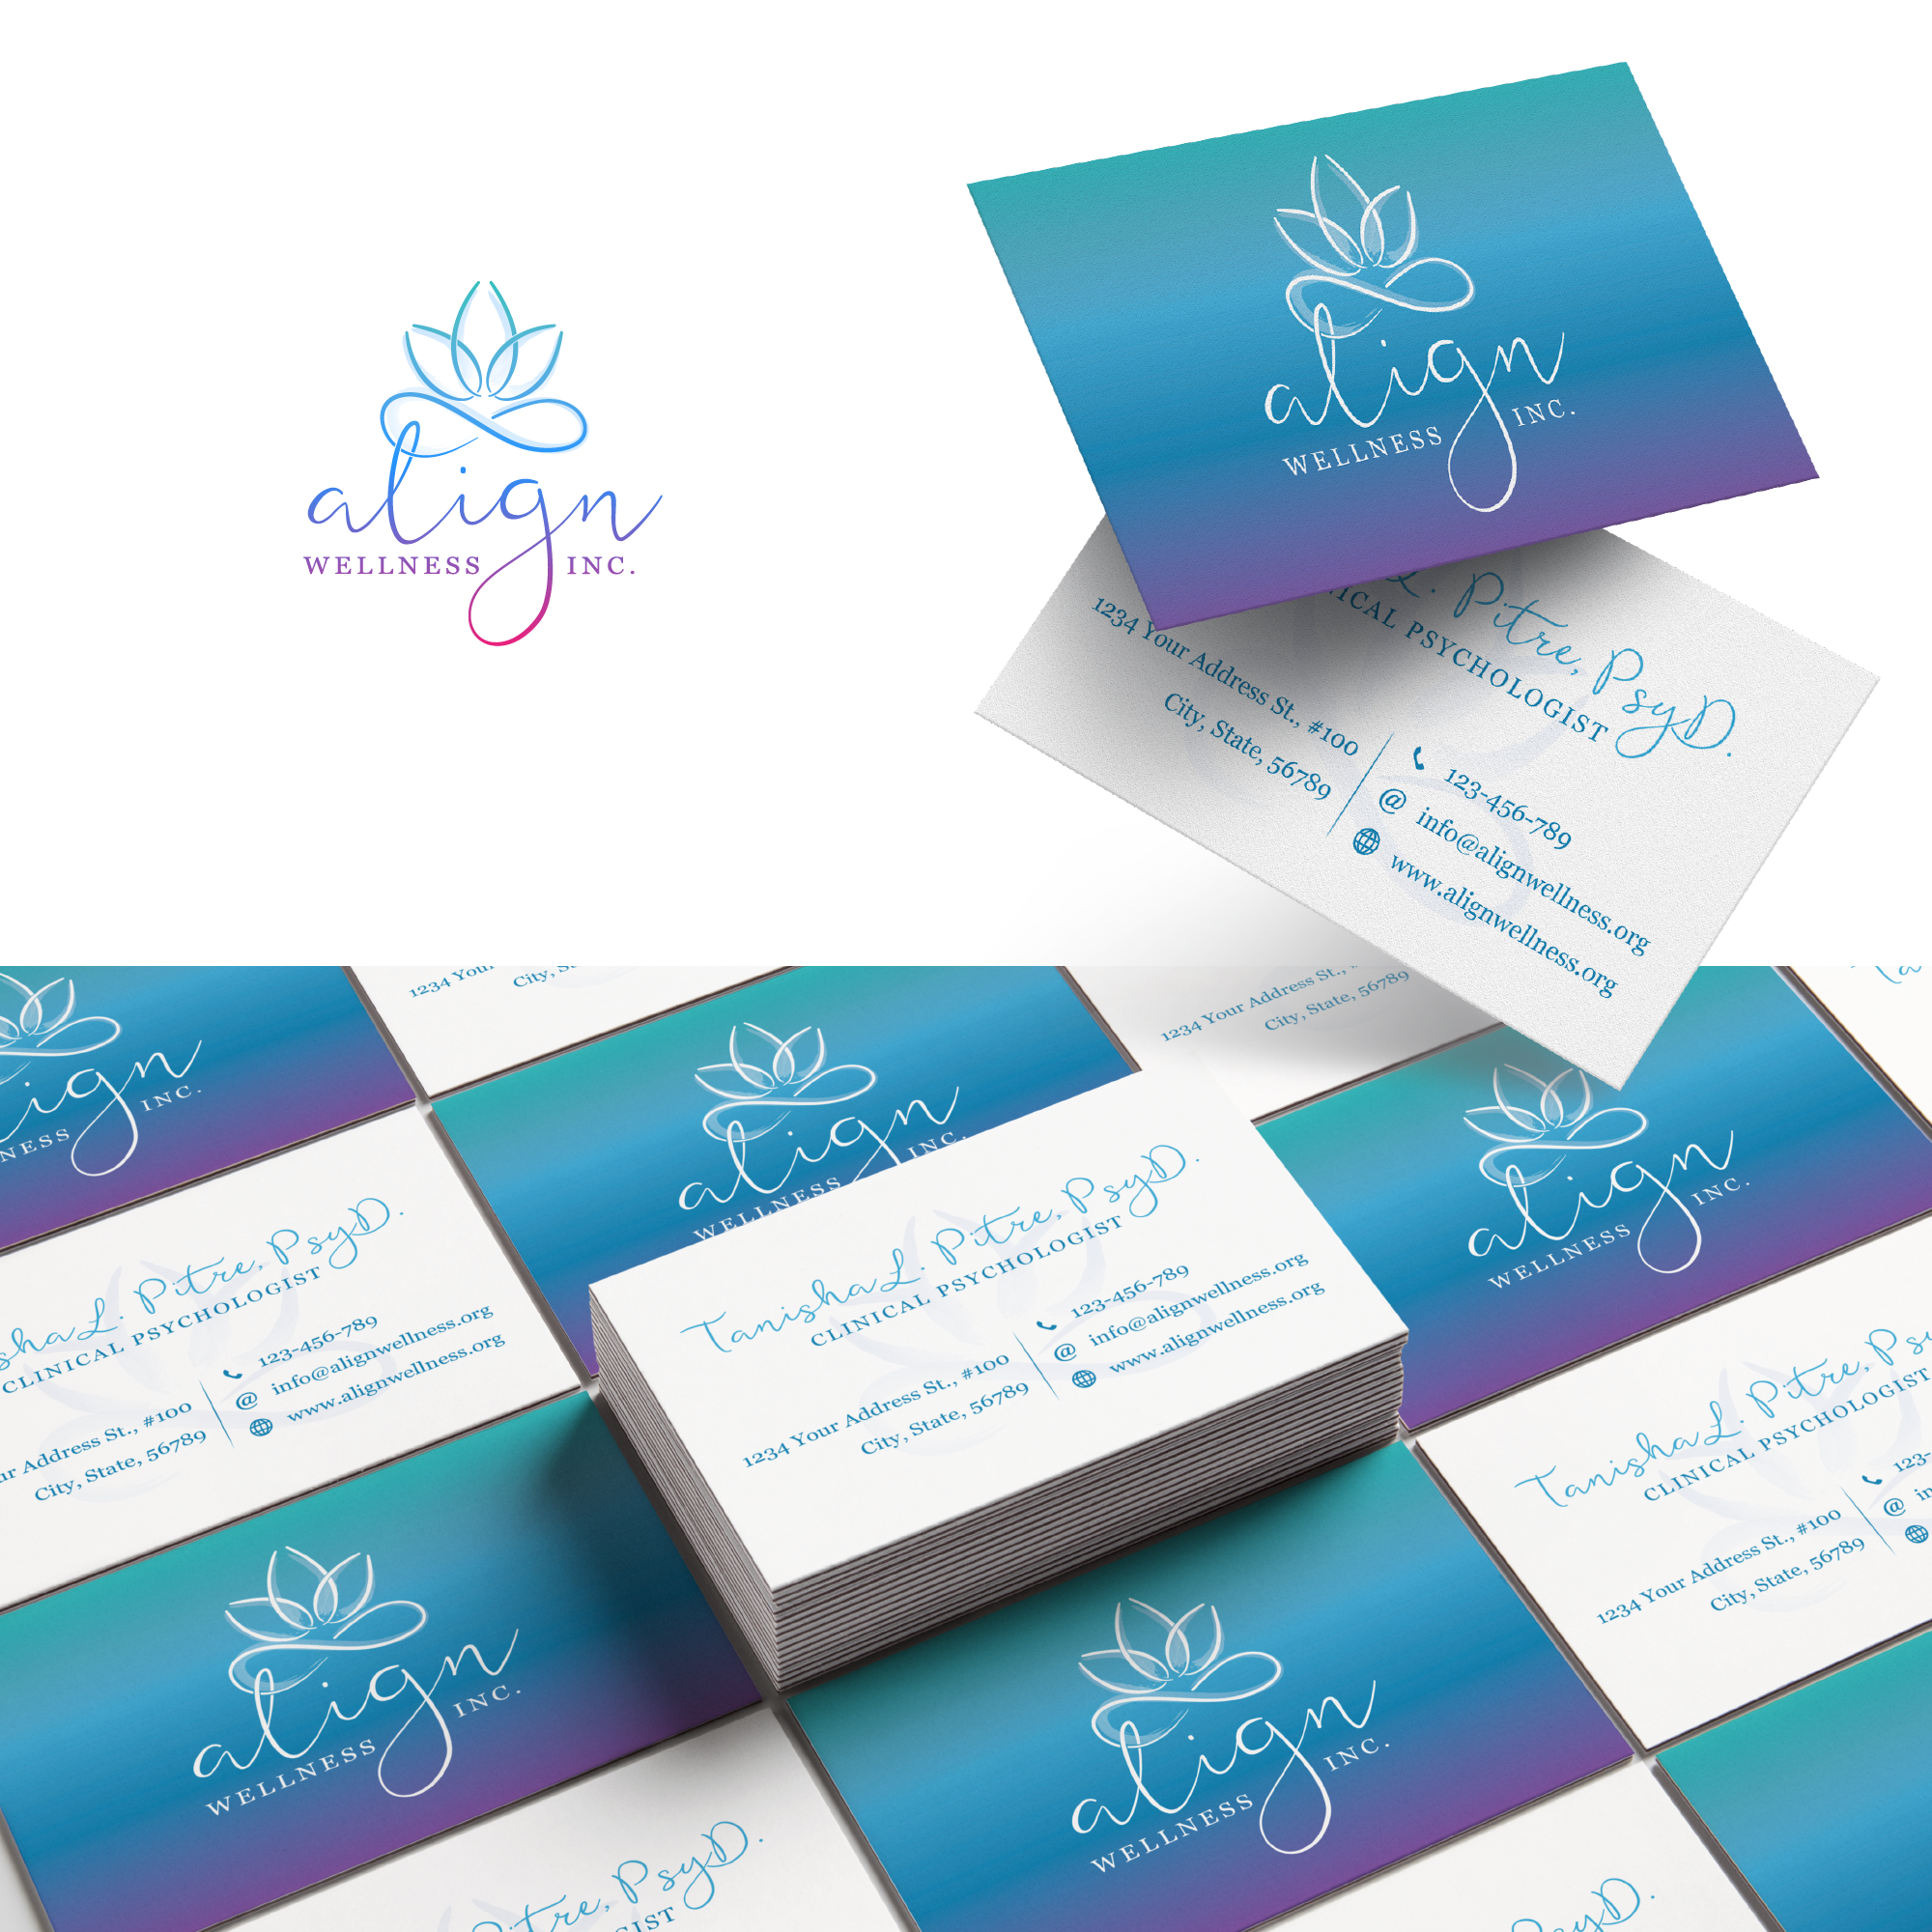 Align Wellness, Inc. business cards